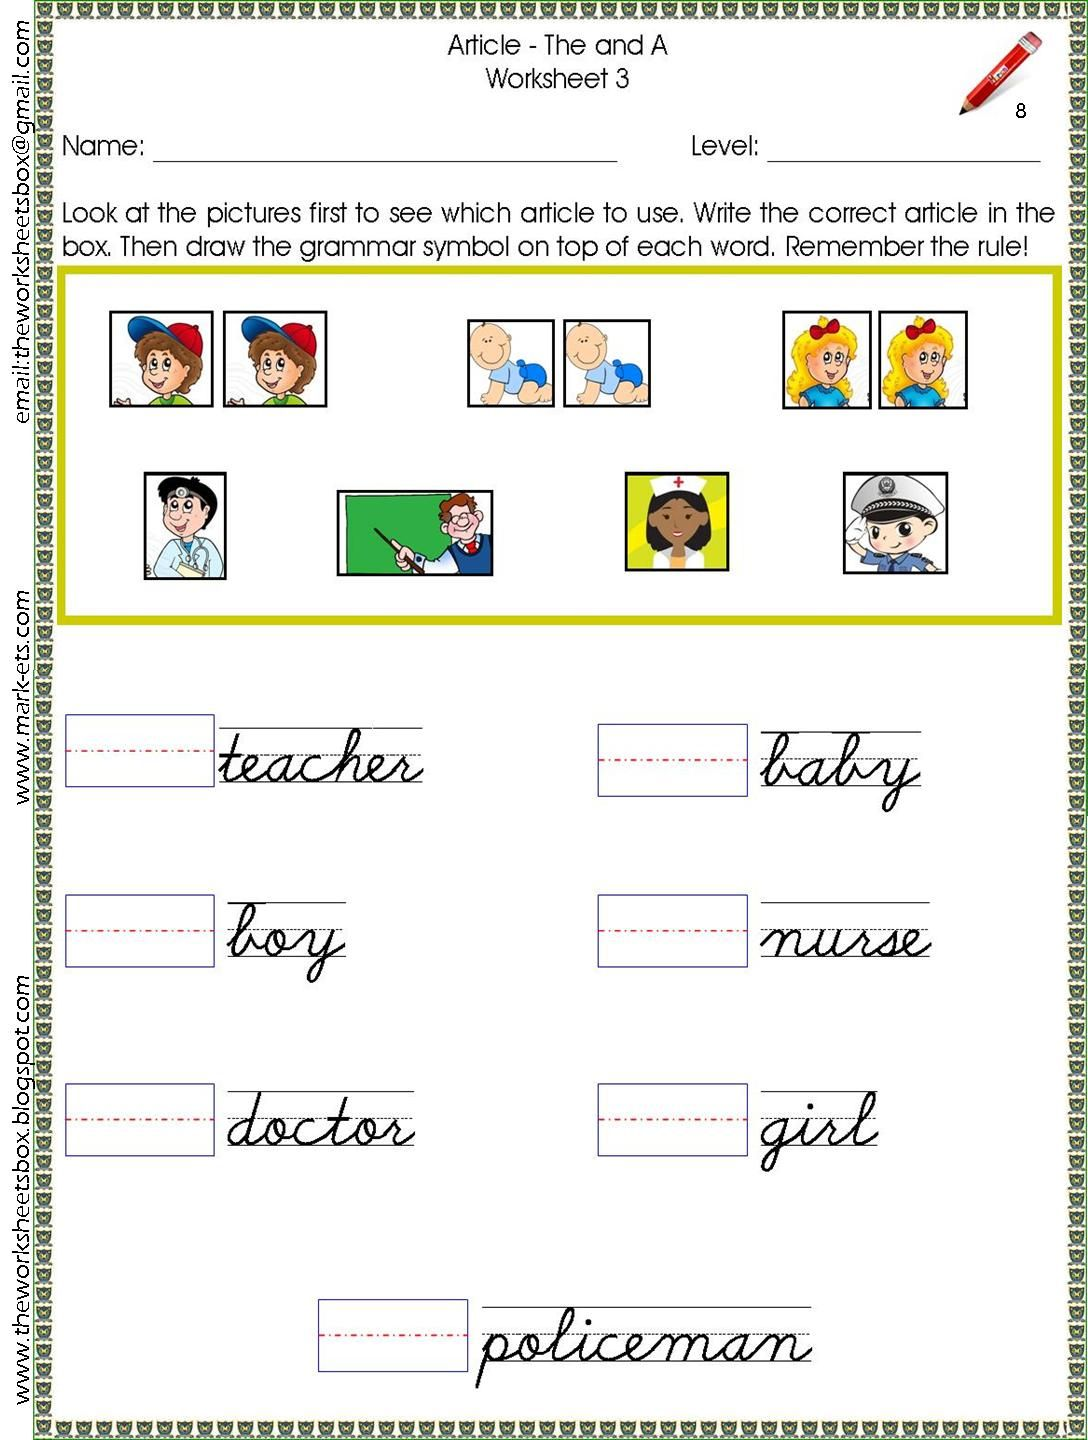 Sample Worksheet For Article And Noun Study